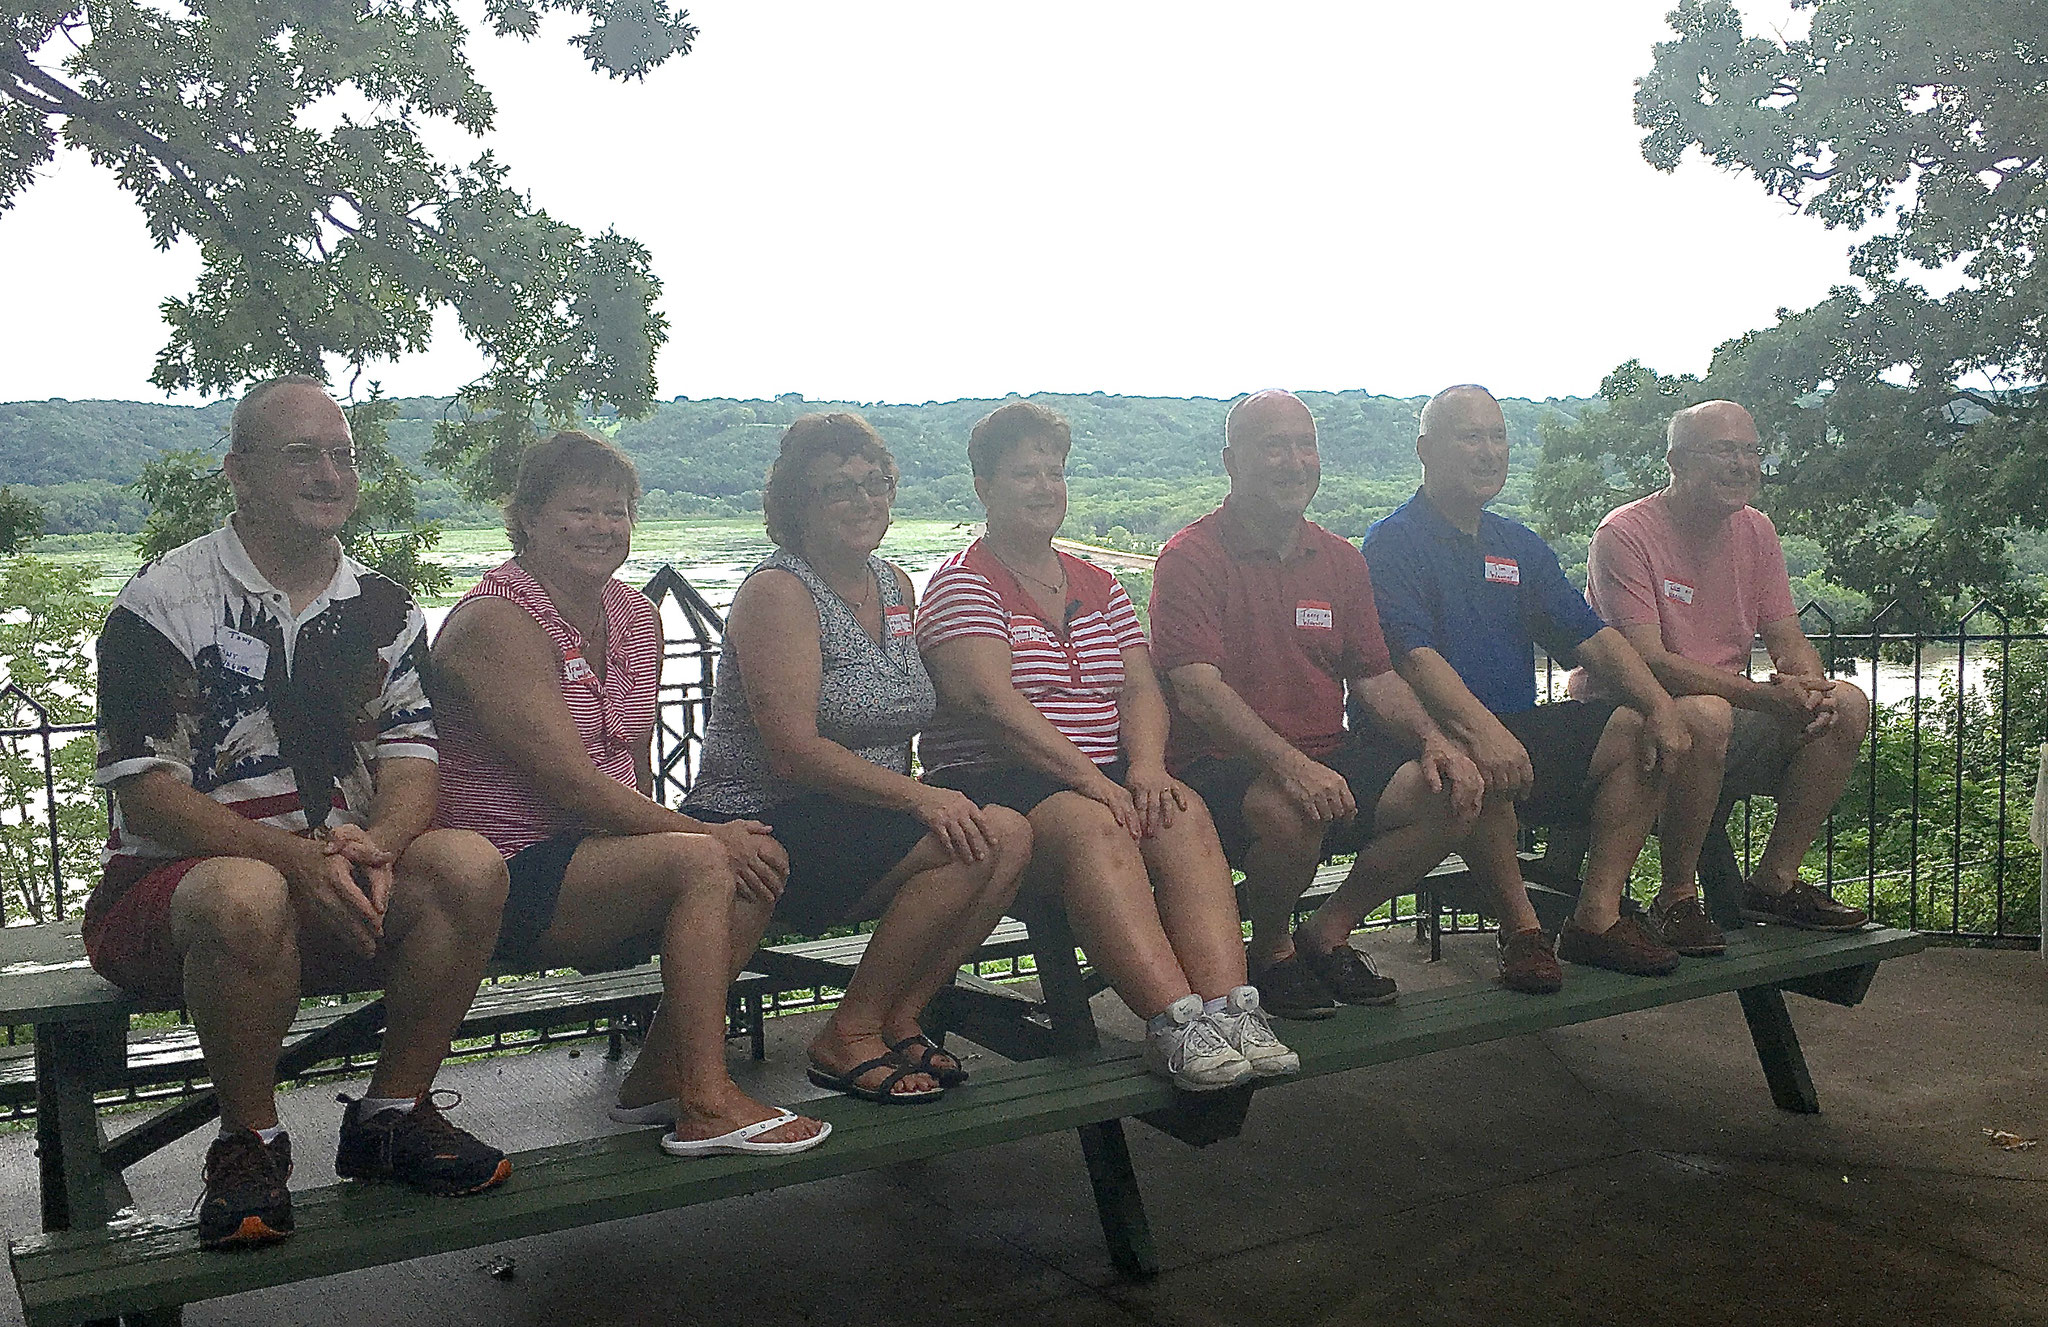 Tony, Tracy, Trudy, Tammy, Terry, Tim and Tom Wagner